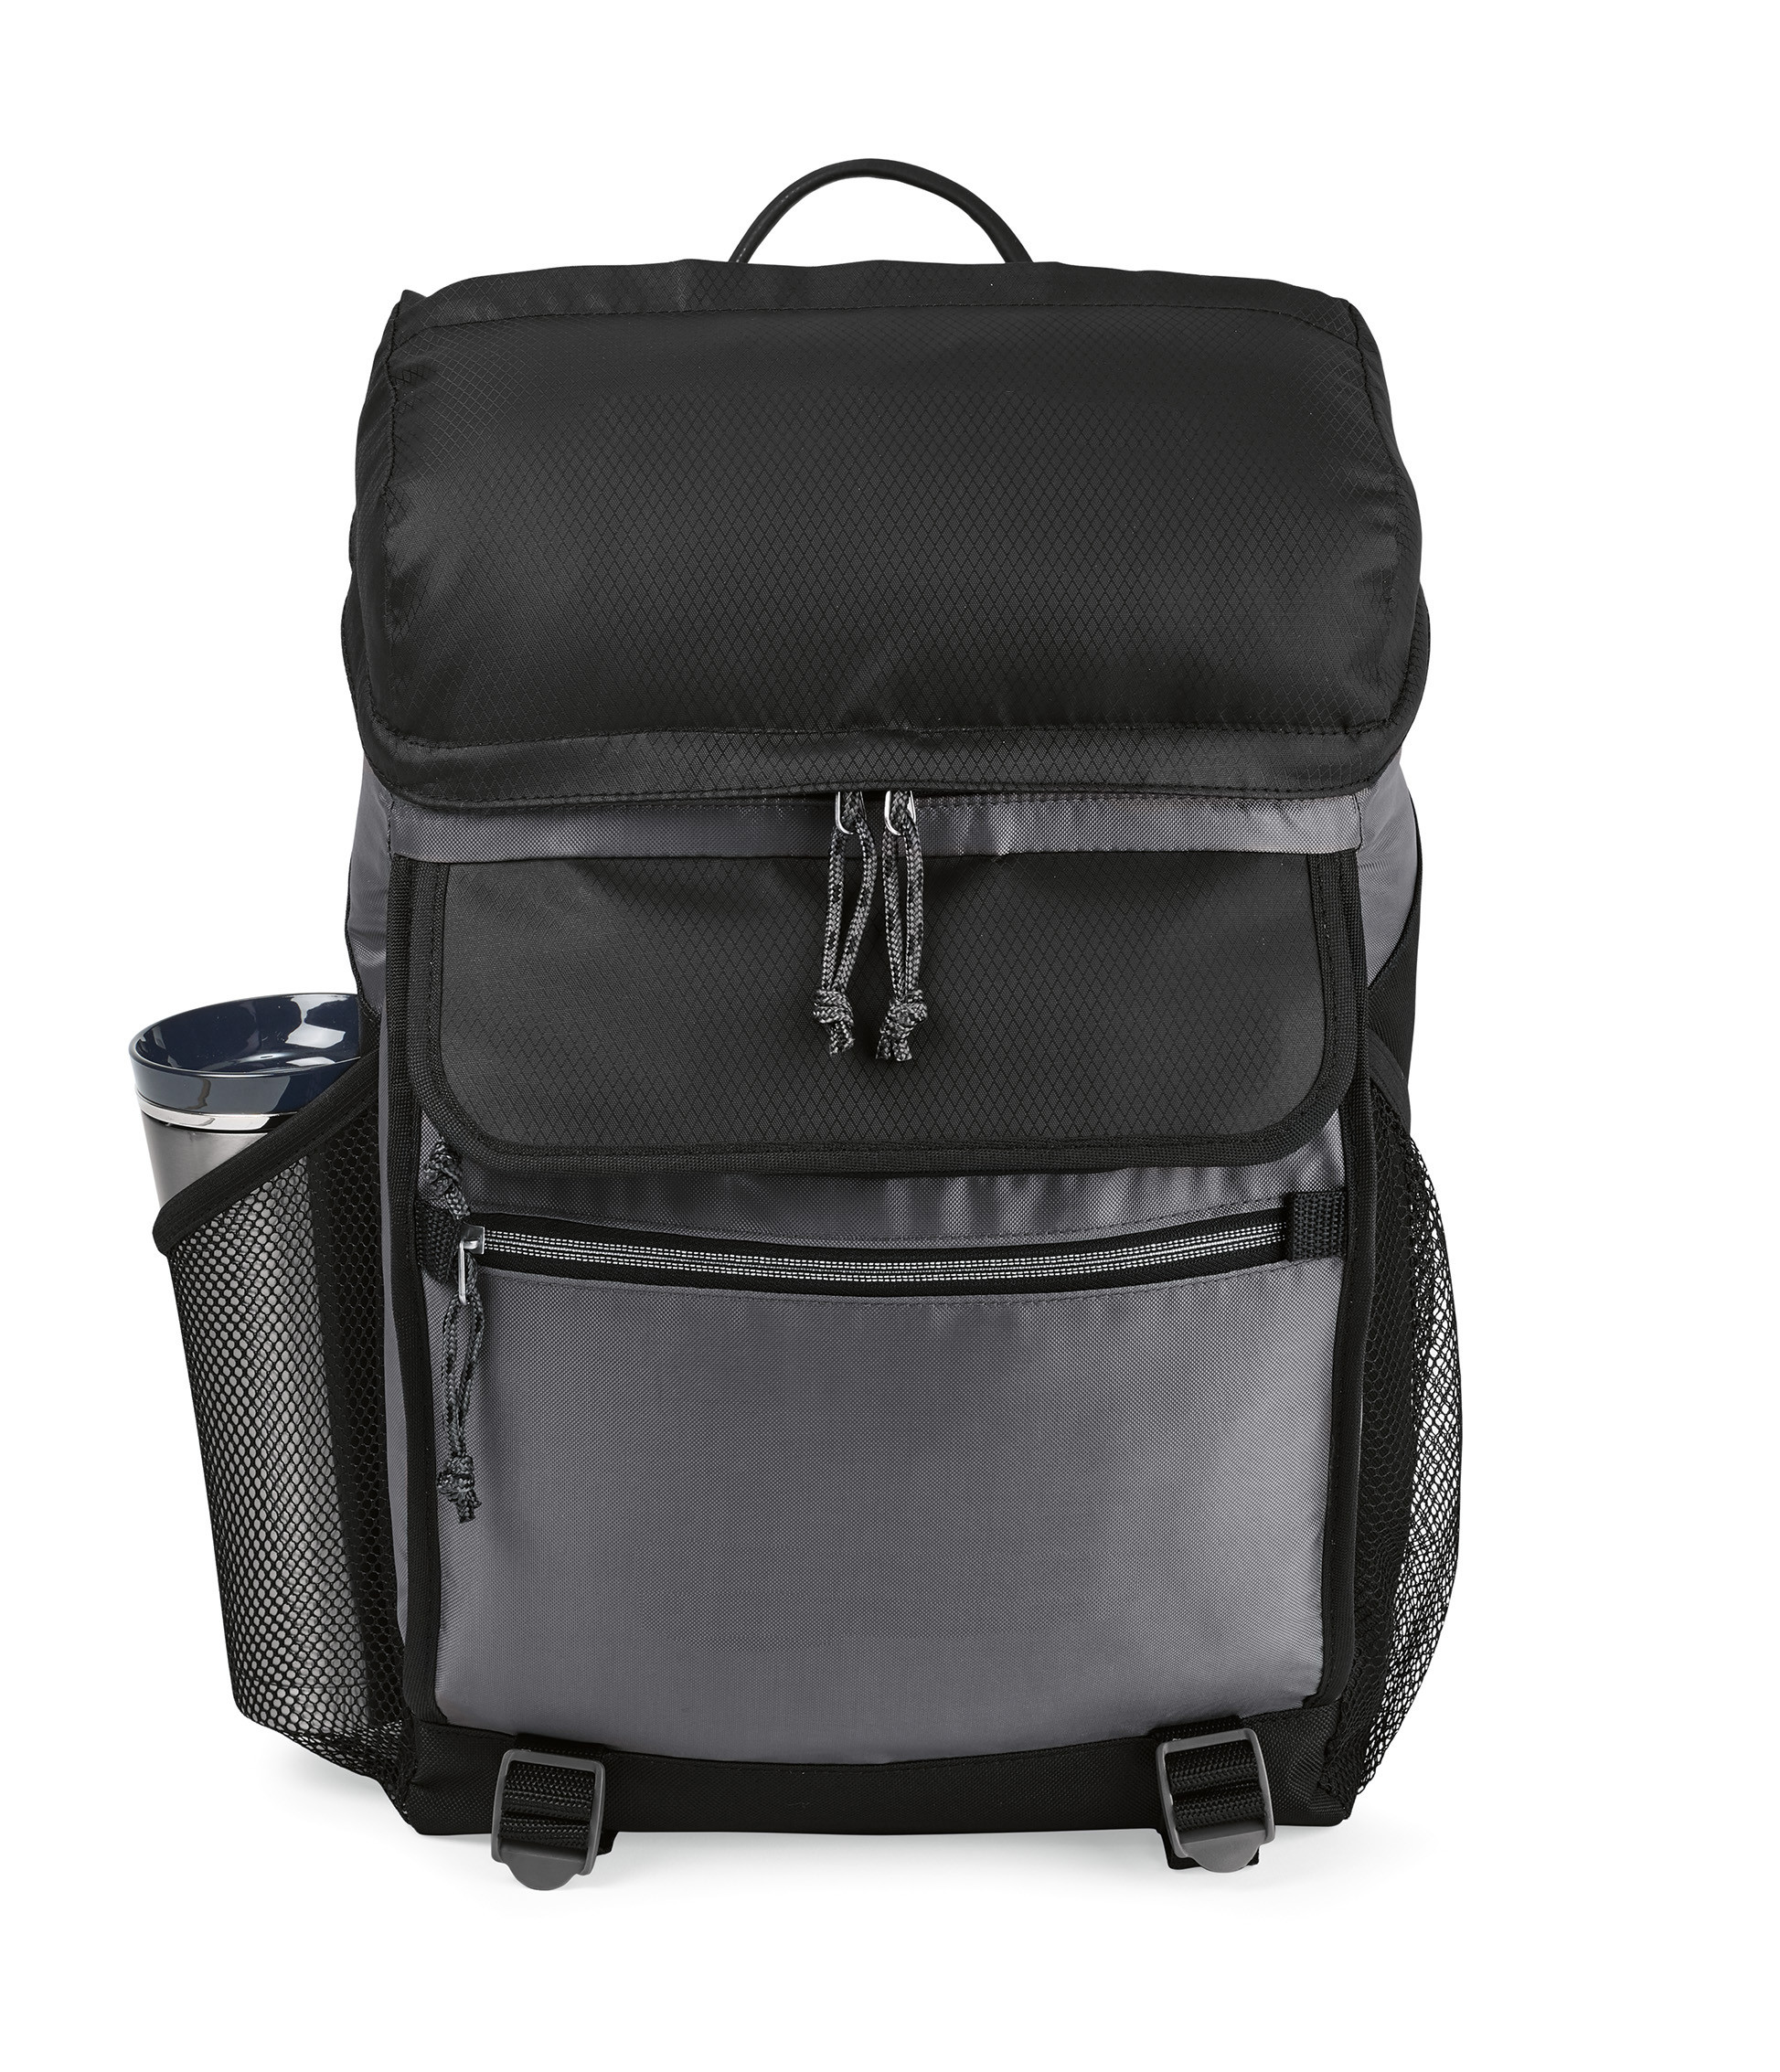 Gemline 5234 - Excursion Computer Backpack with Insulated Pocket